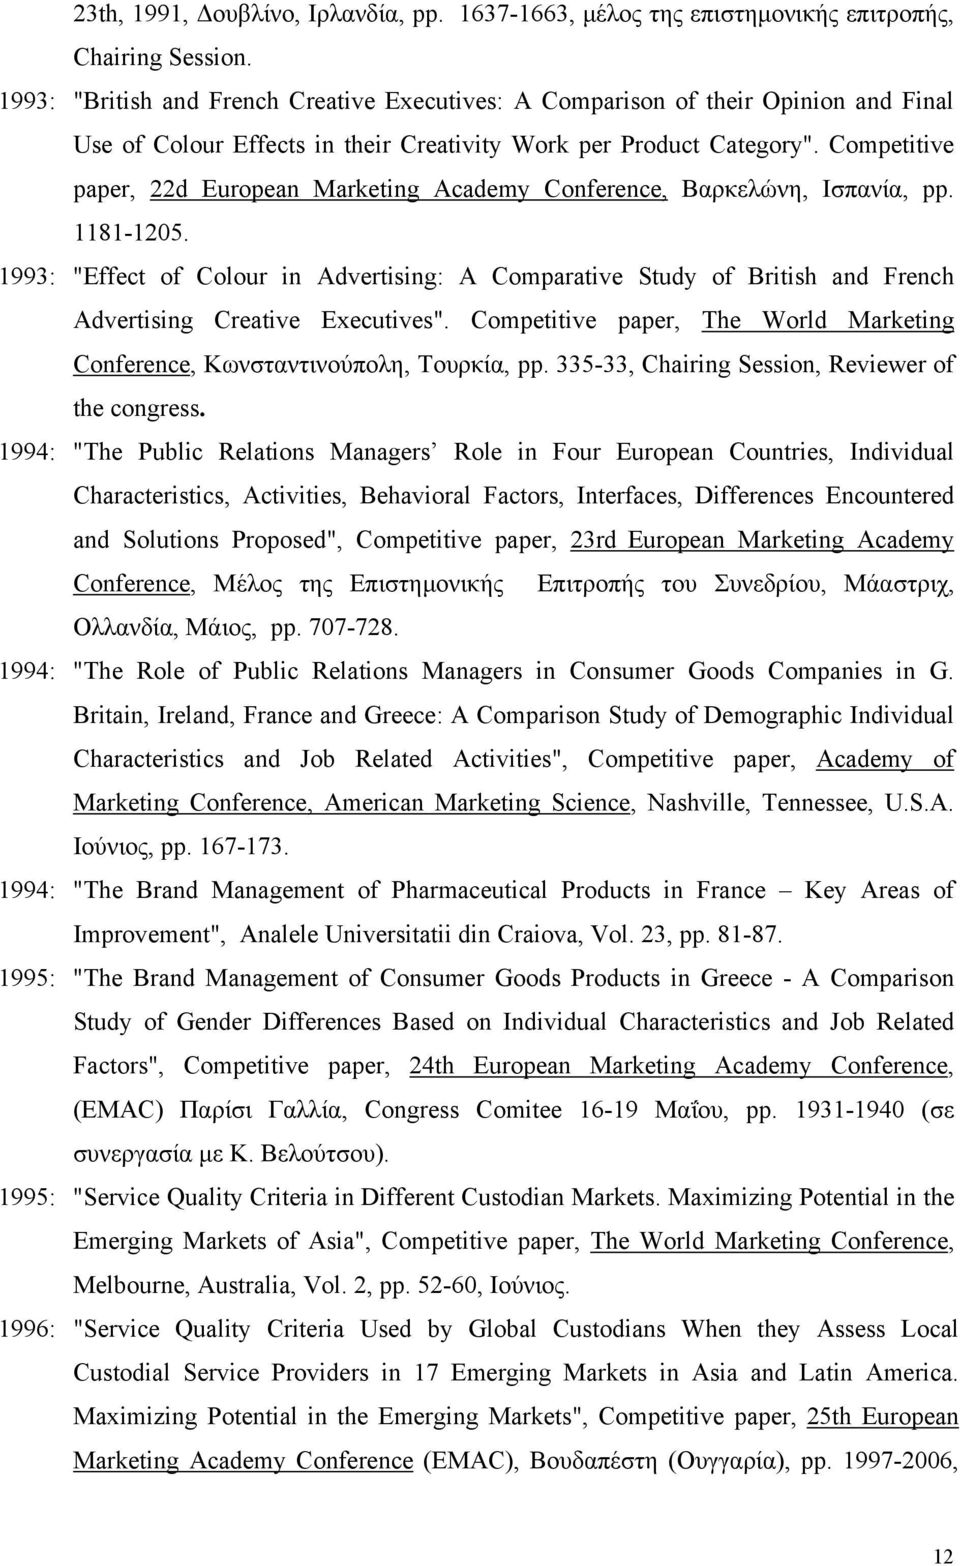 Competitive paper, 22d European Marketing Academy Conference, Βαρκελώνη, Iσπανία, pp. 1181-1205.